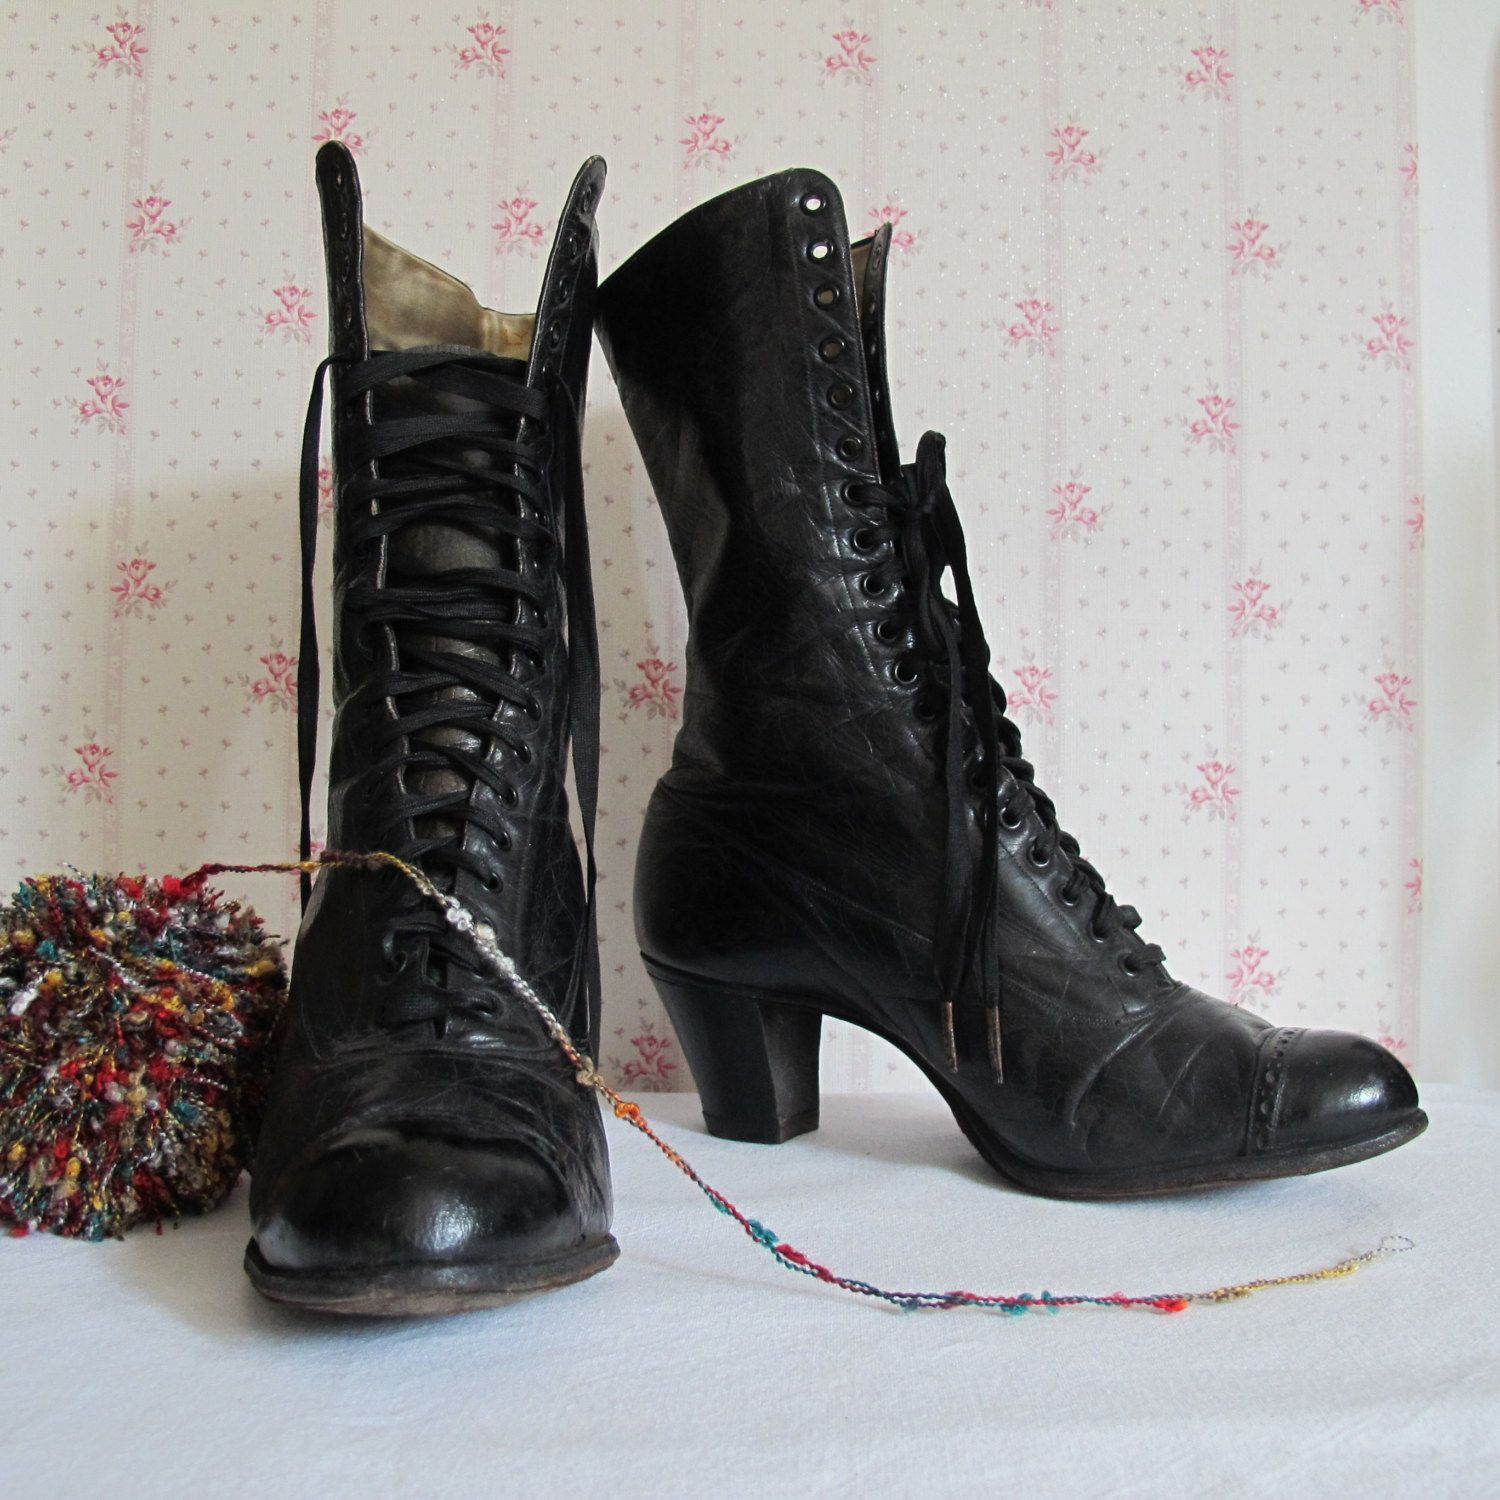 Boots vintage black leather heeled woman years 30-1930 French Cancan- boot  leather laces BALLY Lyon Paris